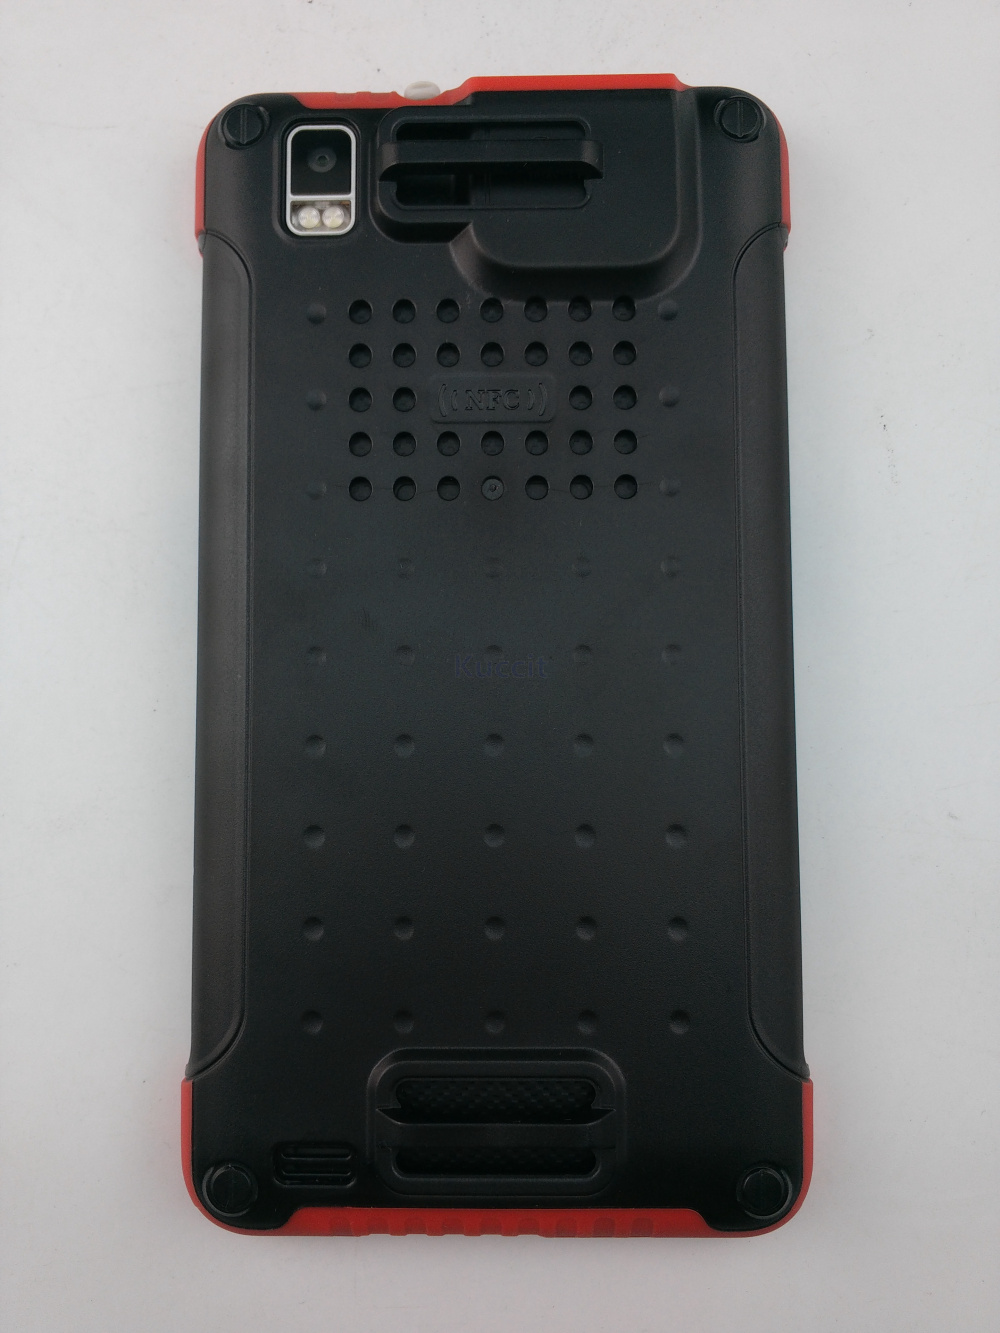 C7S Rugged Tablet PC PDA (35)